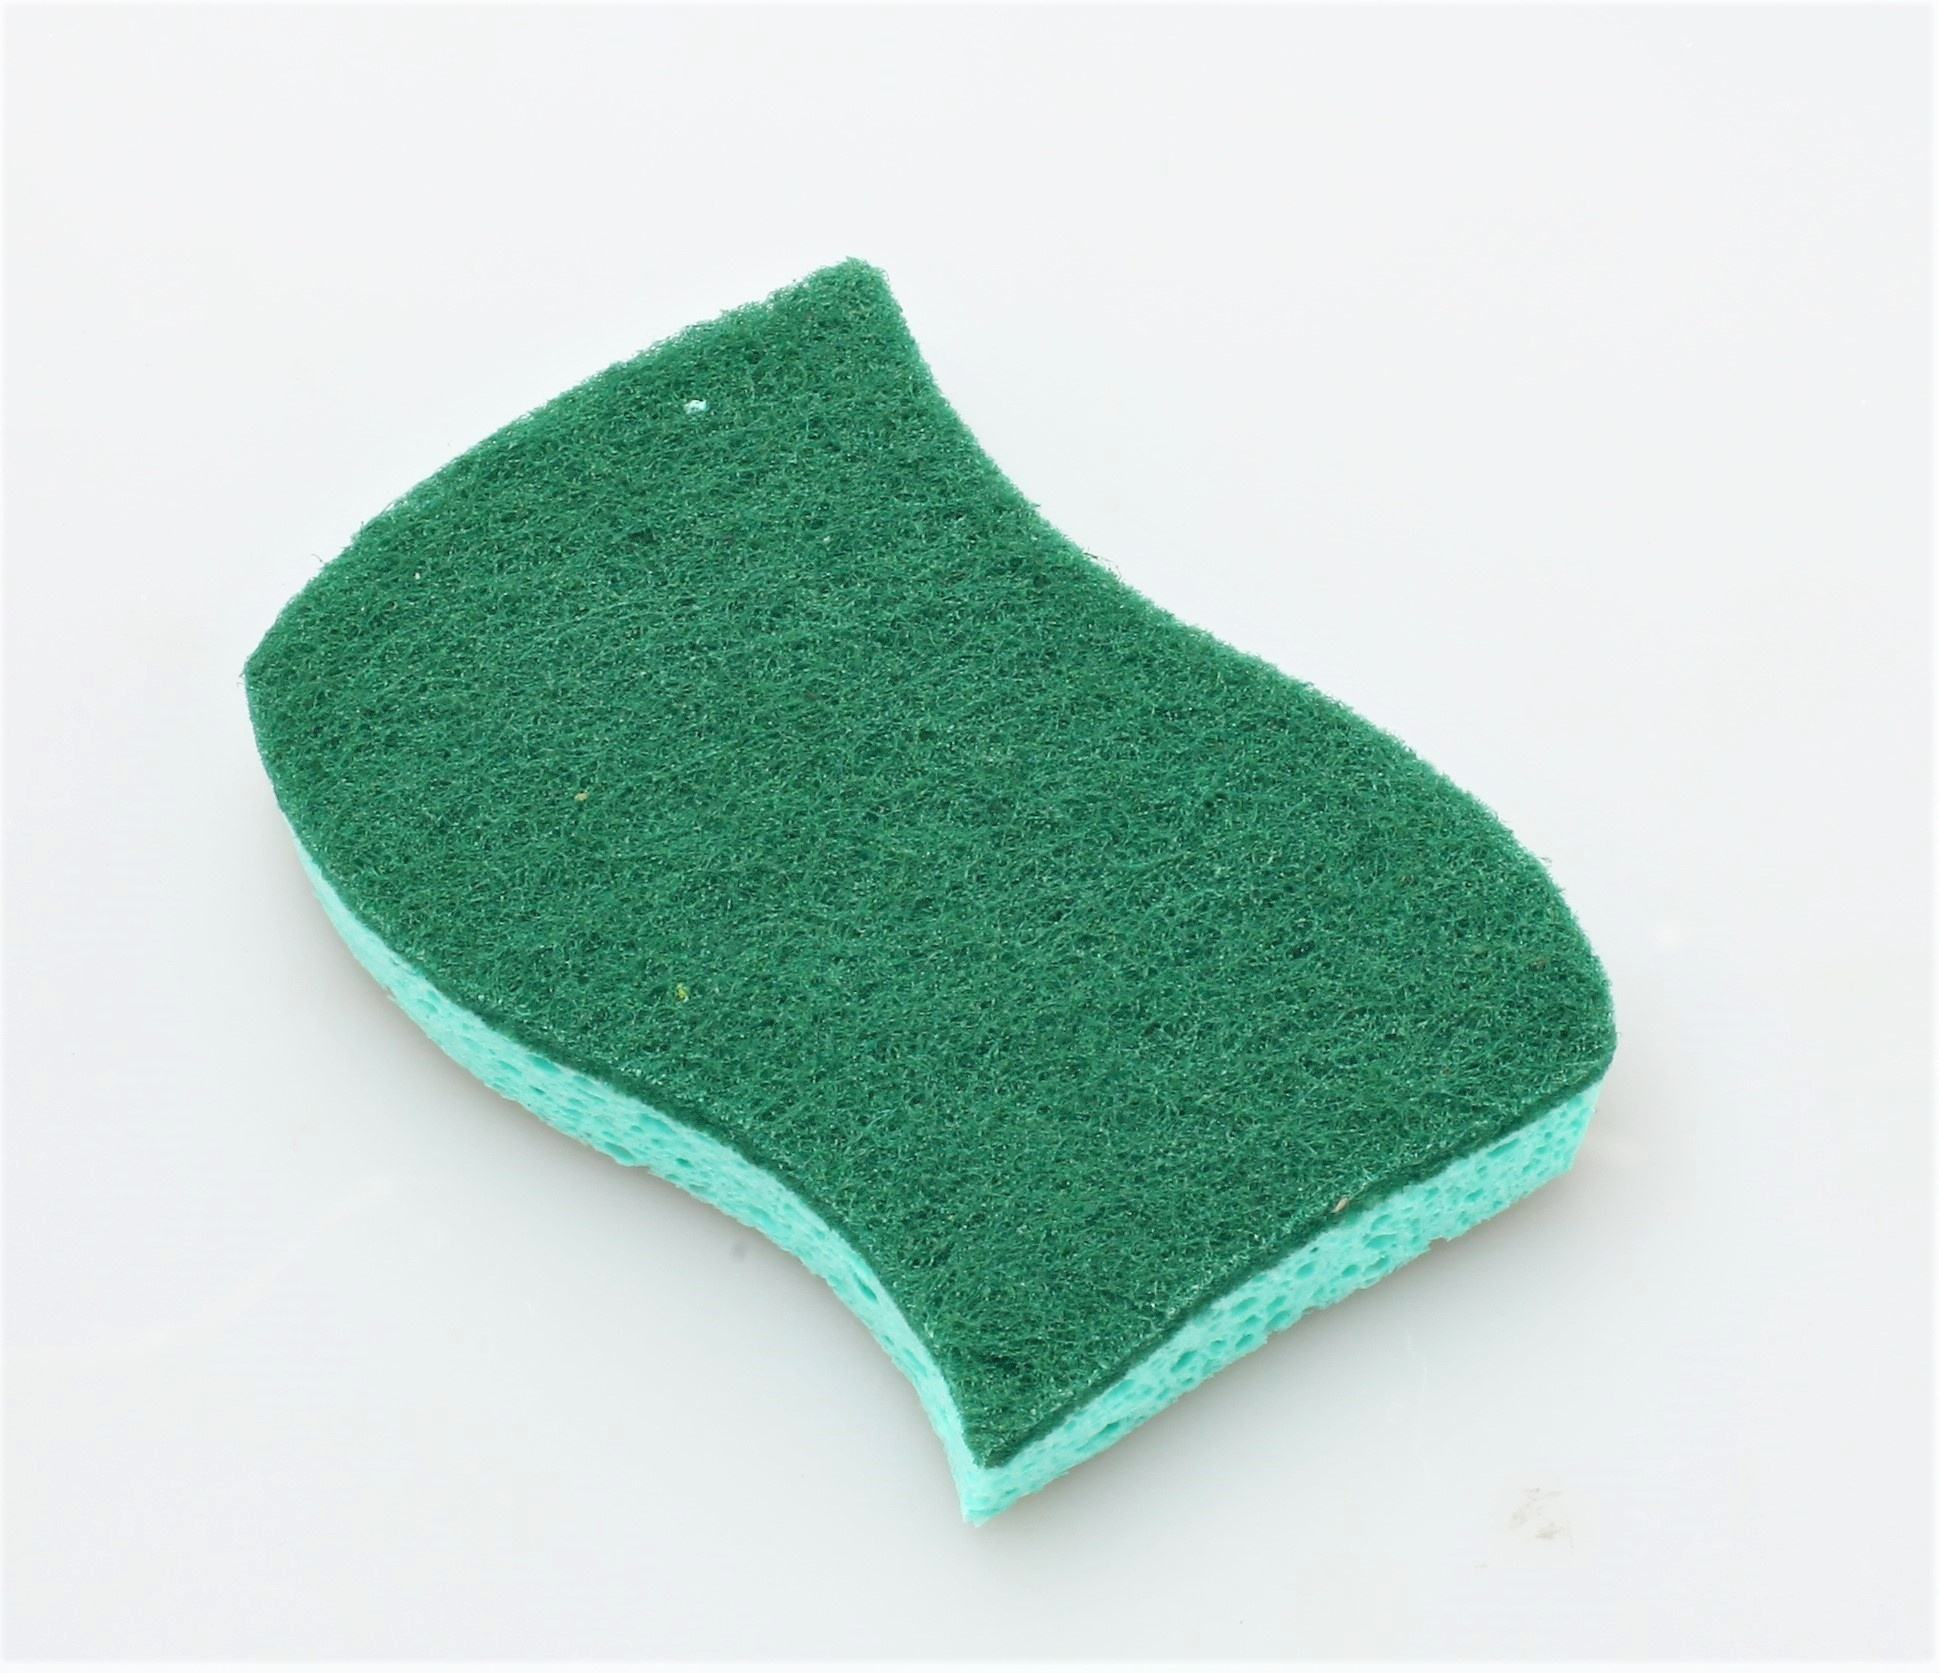 White Natural Pulp High Absorbent Eco-Friendly Cloth Nylon Wet Cellulose Sponge with Reasonable Price